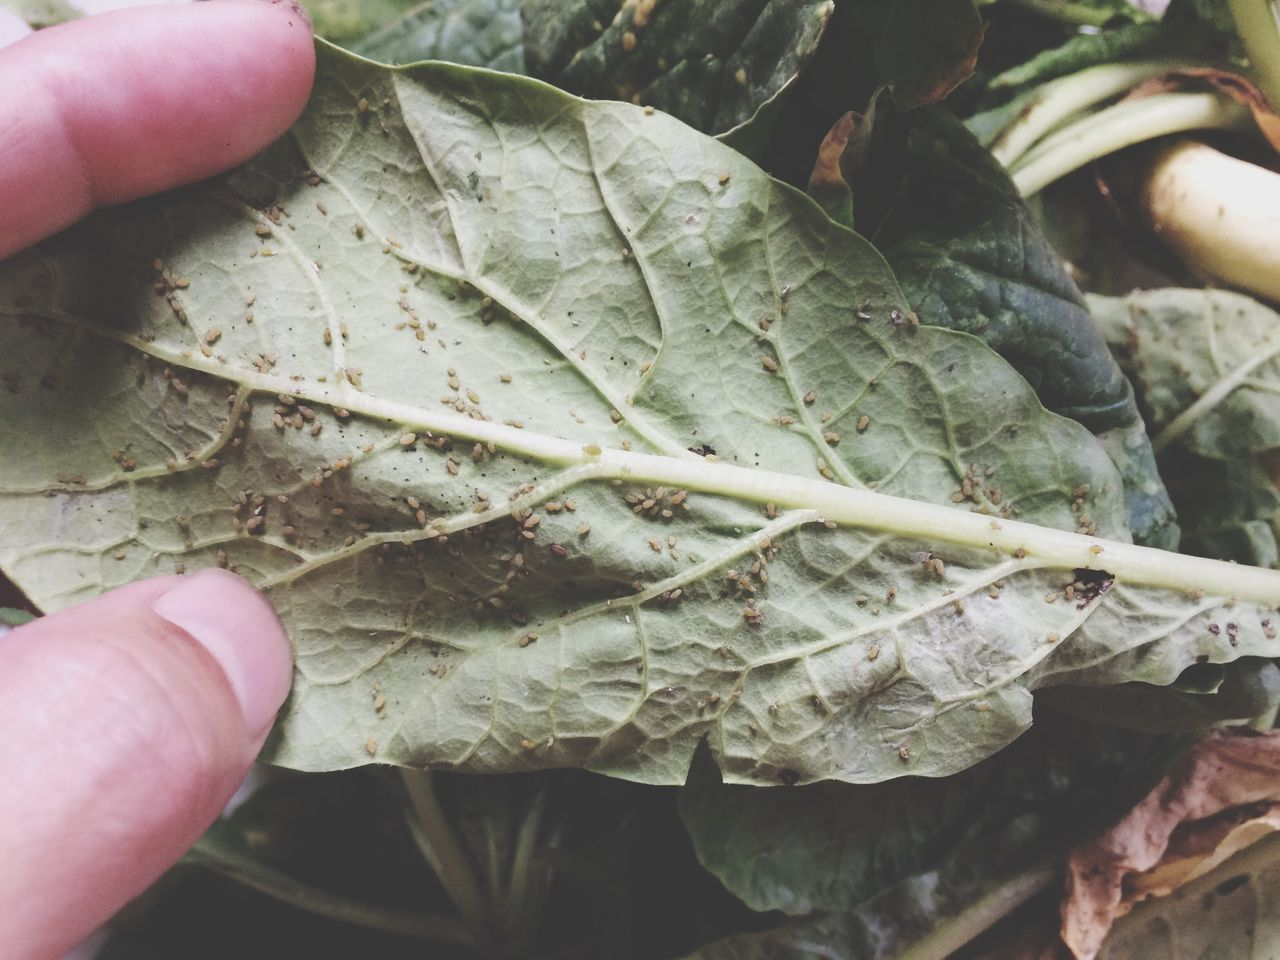 human hand, human body part, human finger, leaf, one person, holding, unrecognizable person, close-up, real people, outdoors, day, nature, food, freshness